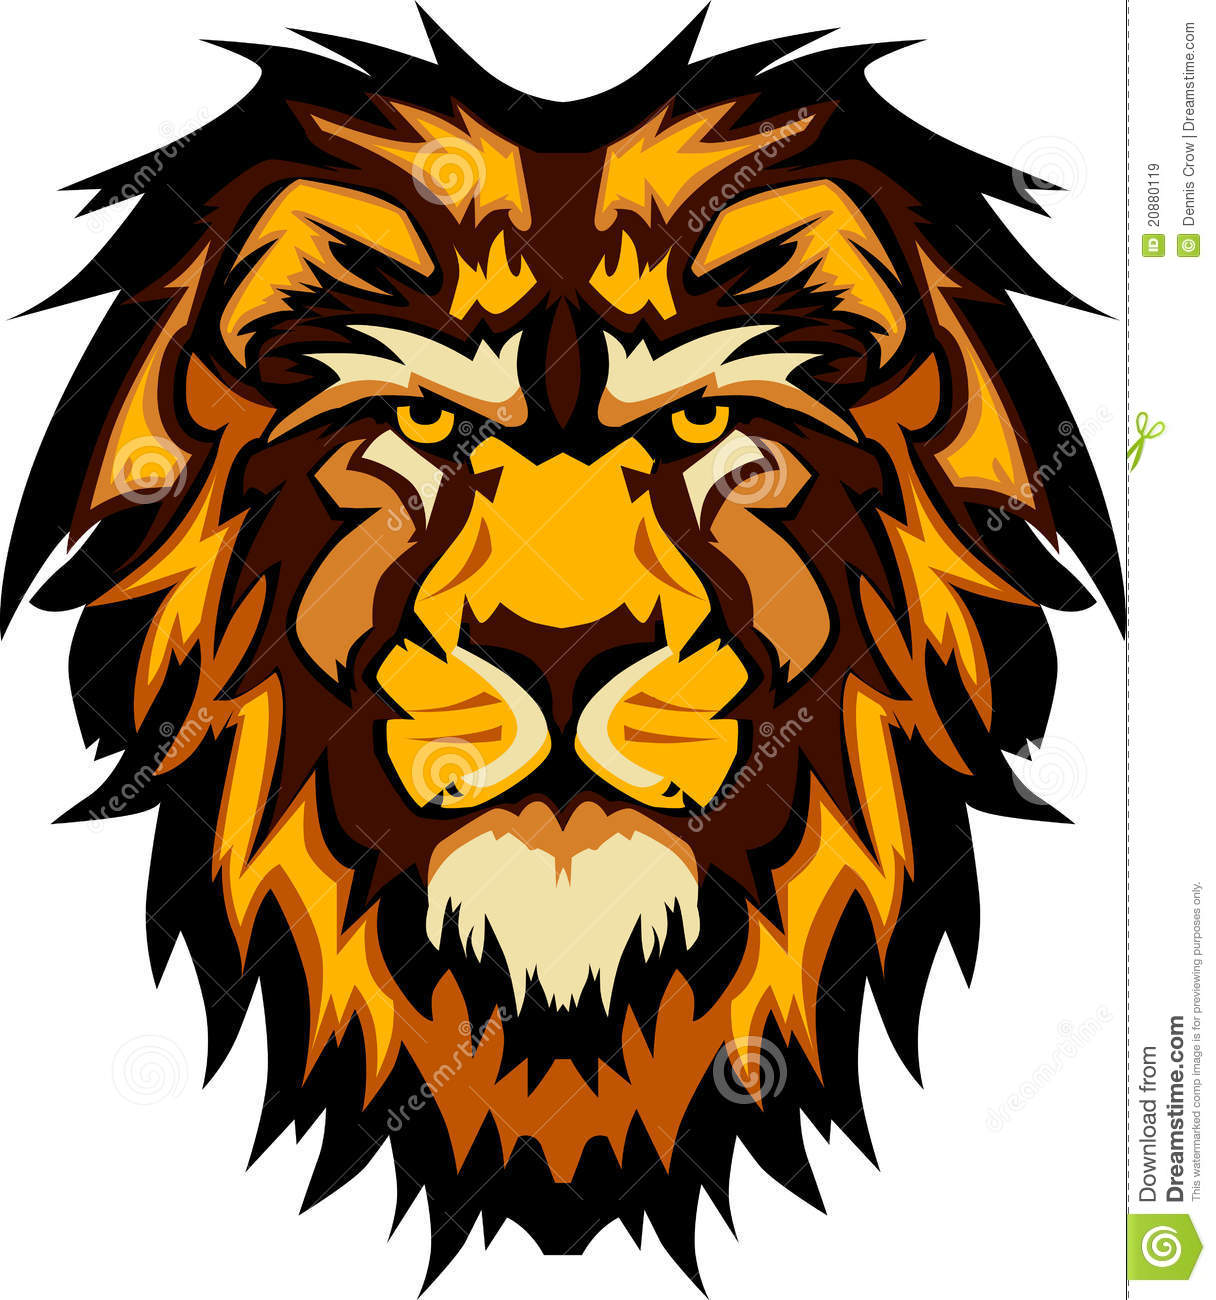 Lion Head Graphic Mascot Vector Image Royalty Free Stock